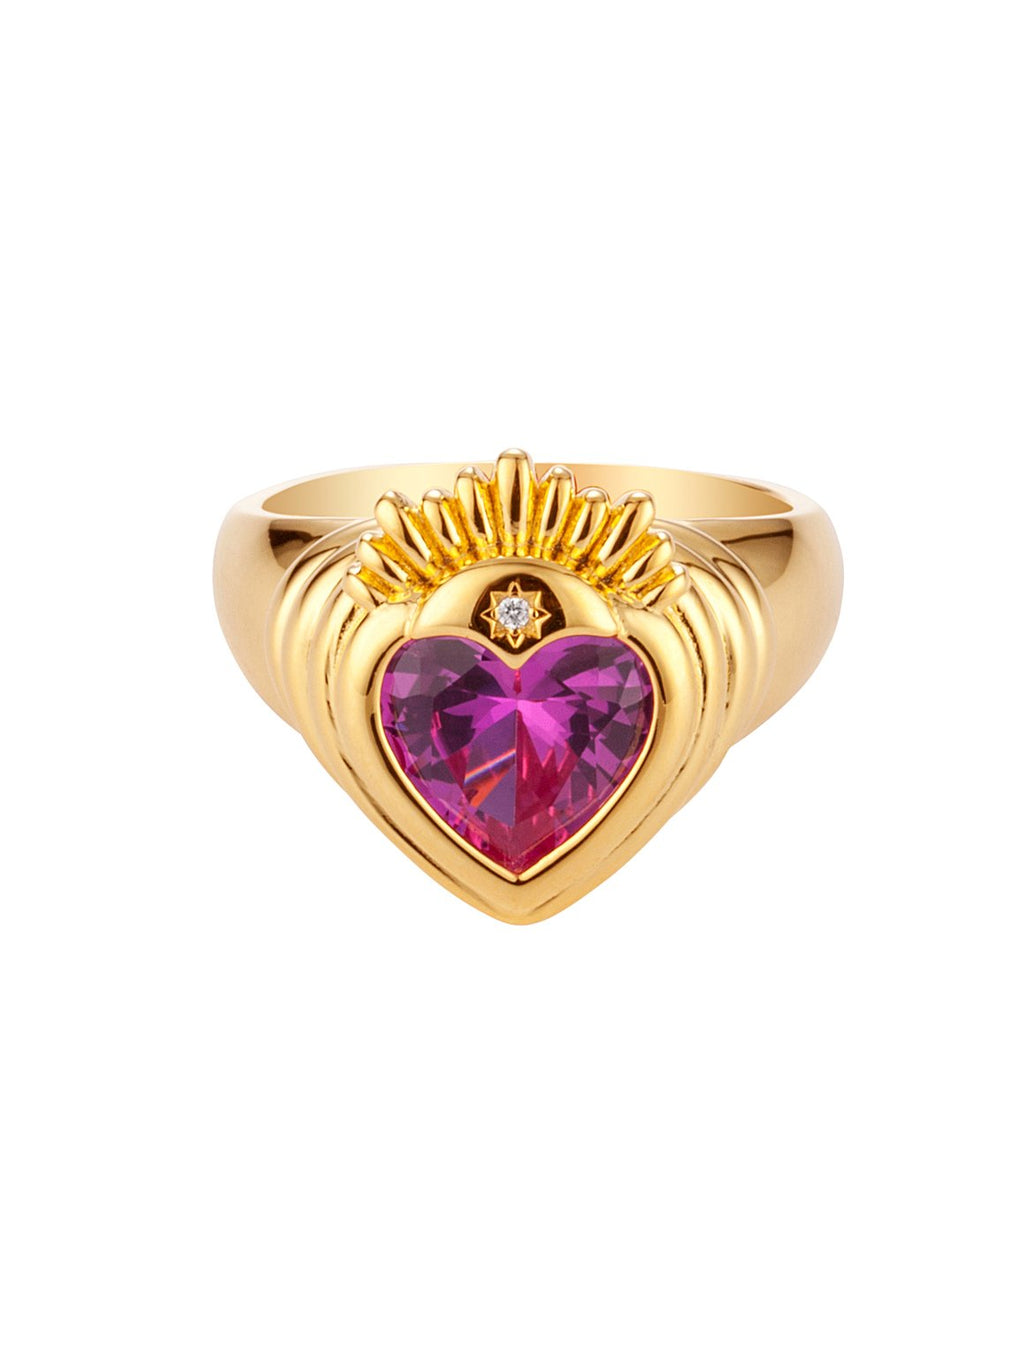 JULY CHILD QUEEN OF HEARTS RING